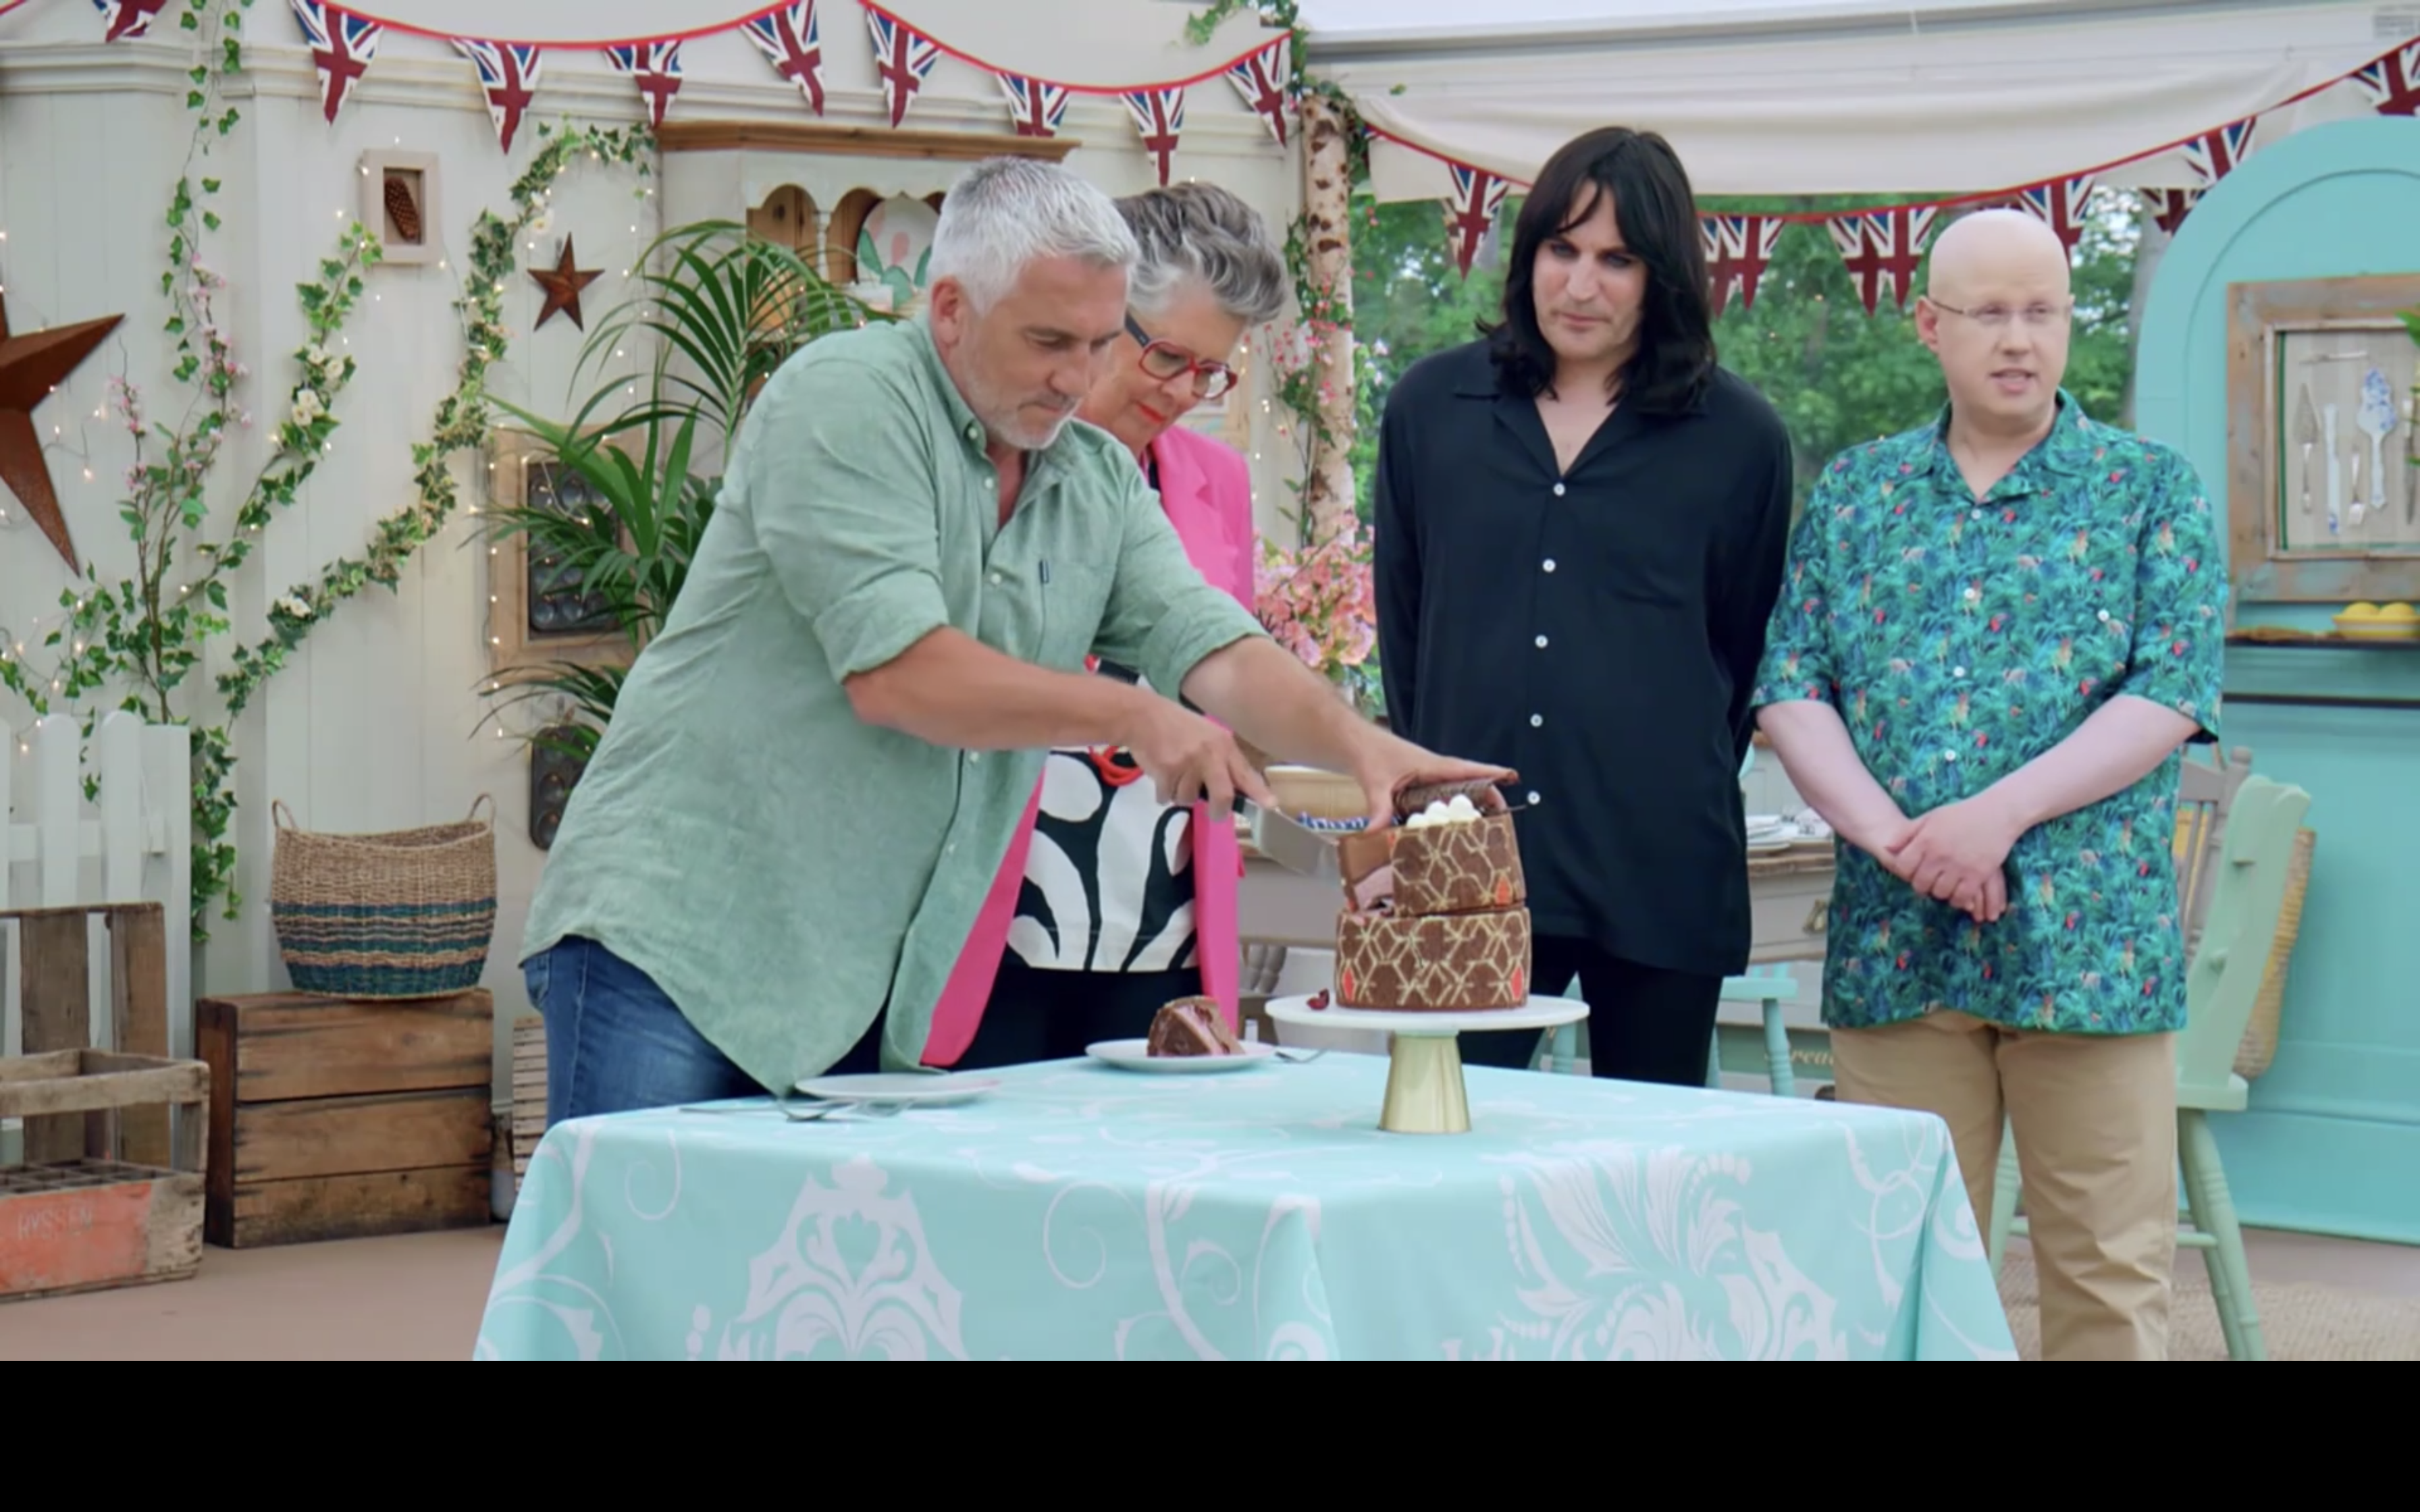 Paul Hollywood cuts into an imprimé dessert, patterned like European tiling, surrounded by Prue Leith, Noel Fielding, and Matt Lucas.